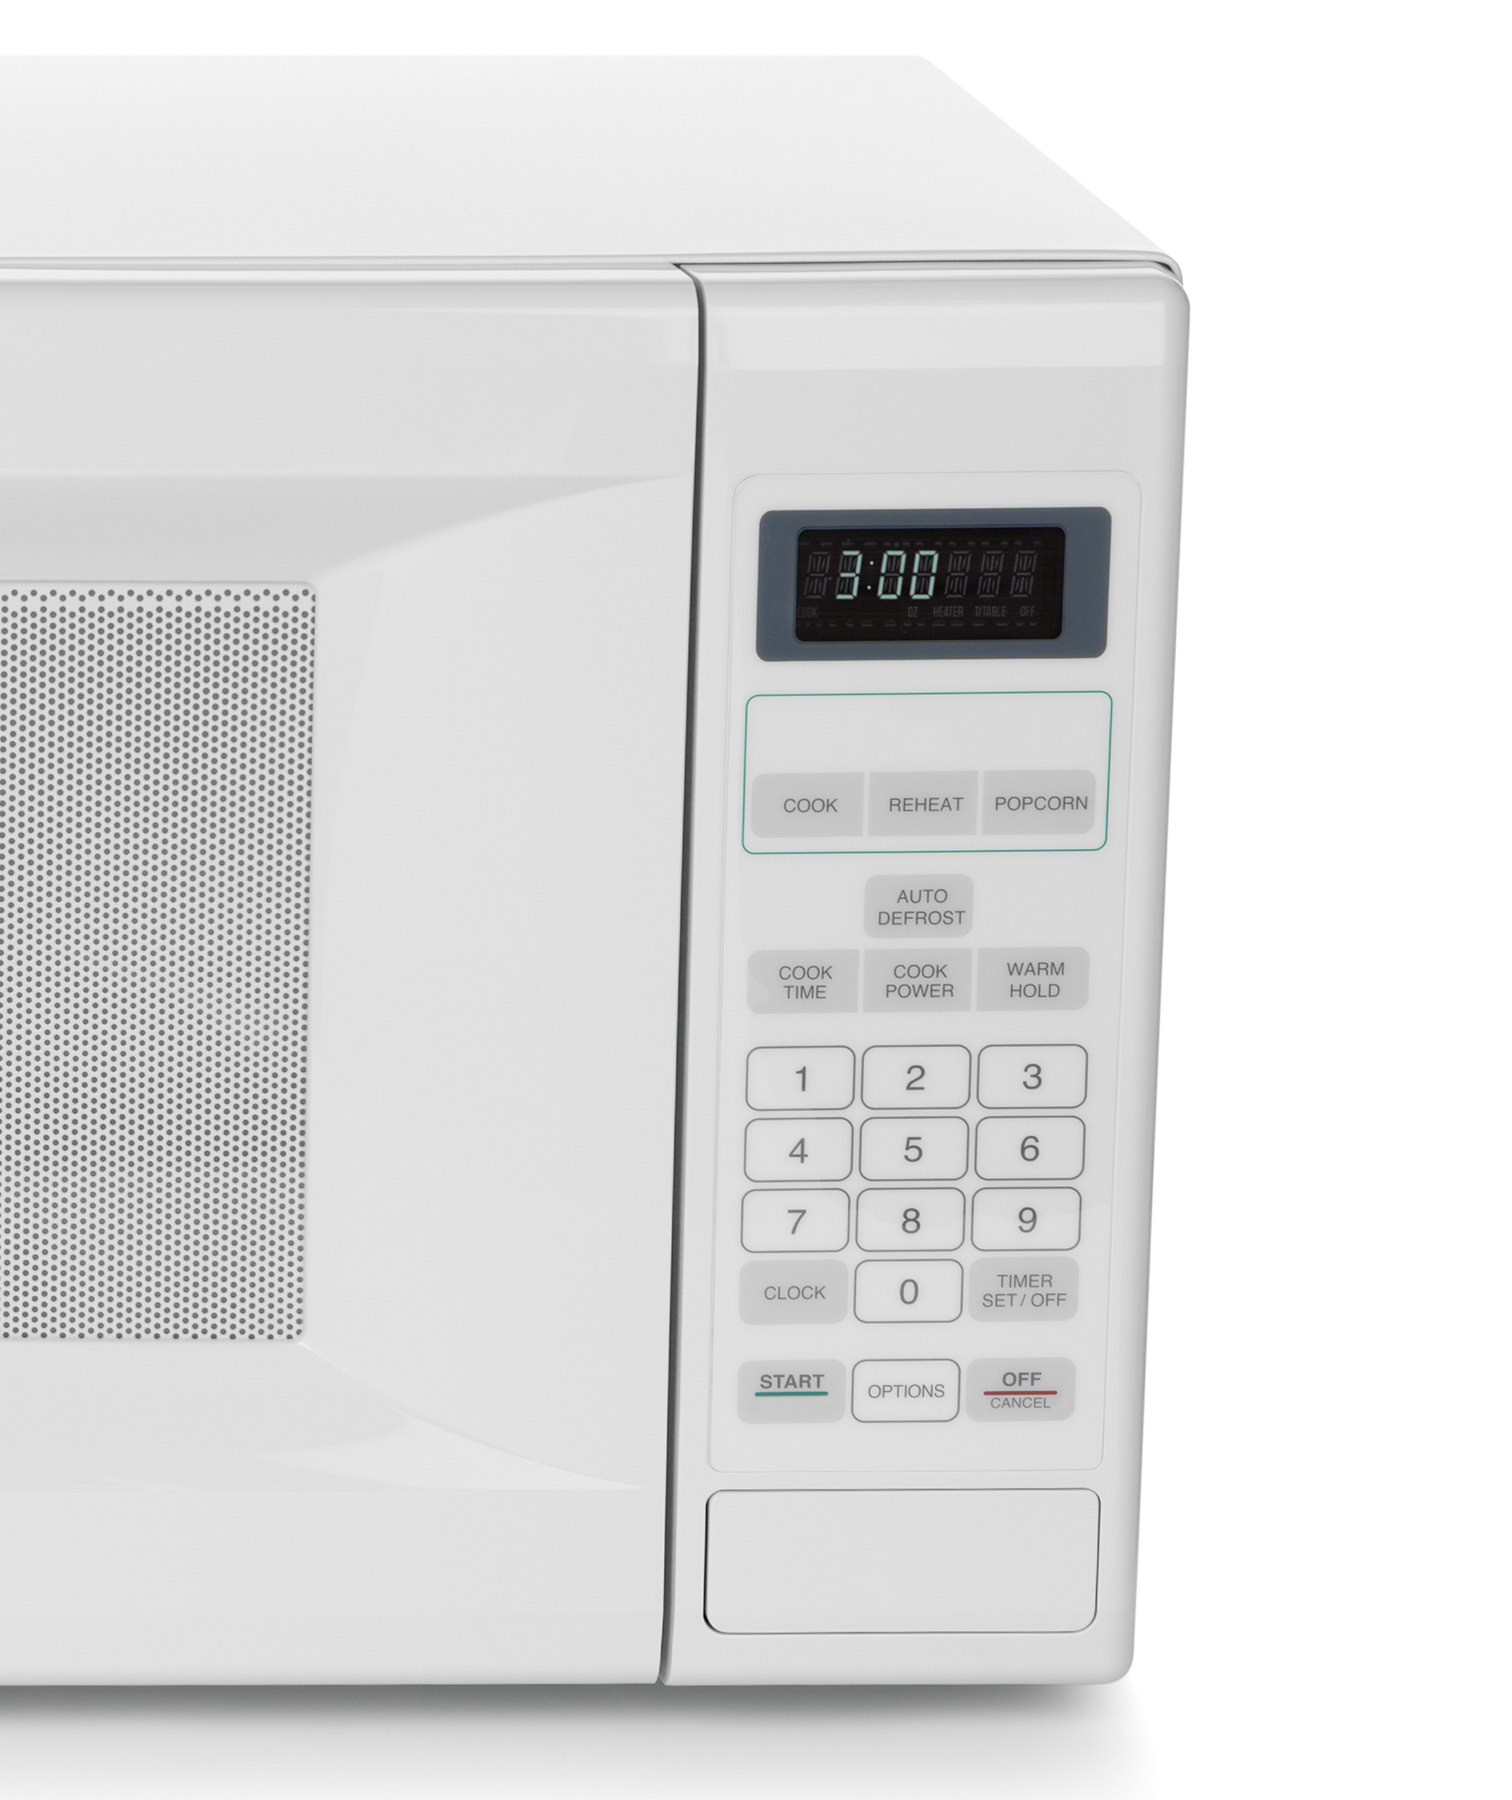 sc 1 st  Real Simple & Which Food Containers Are Safe for the Microwave? - Real Simple